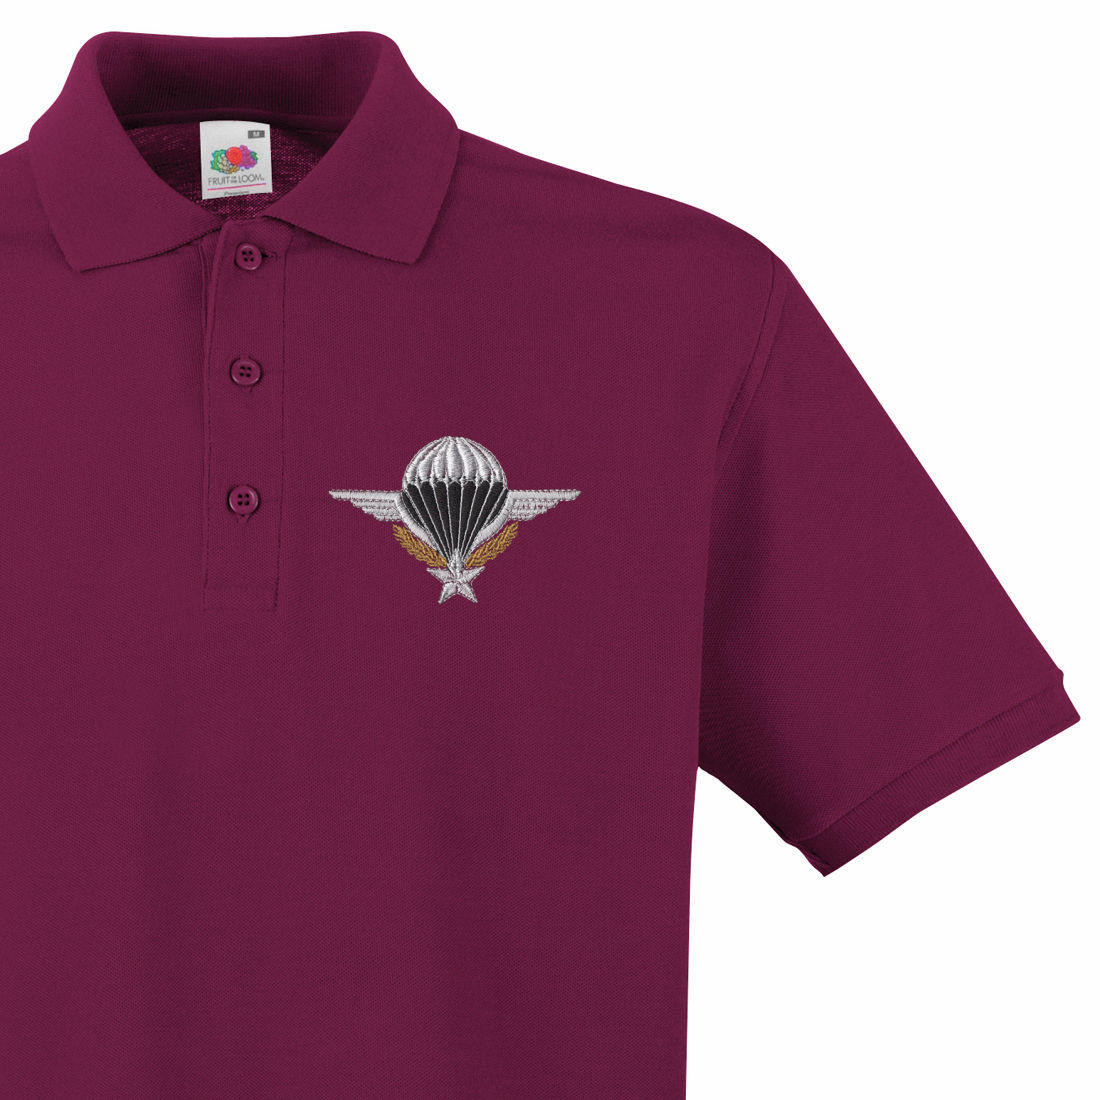 Polo Shirt - Maroon - French Para Wings